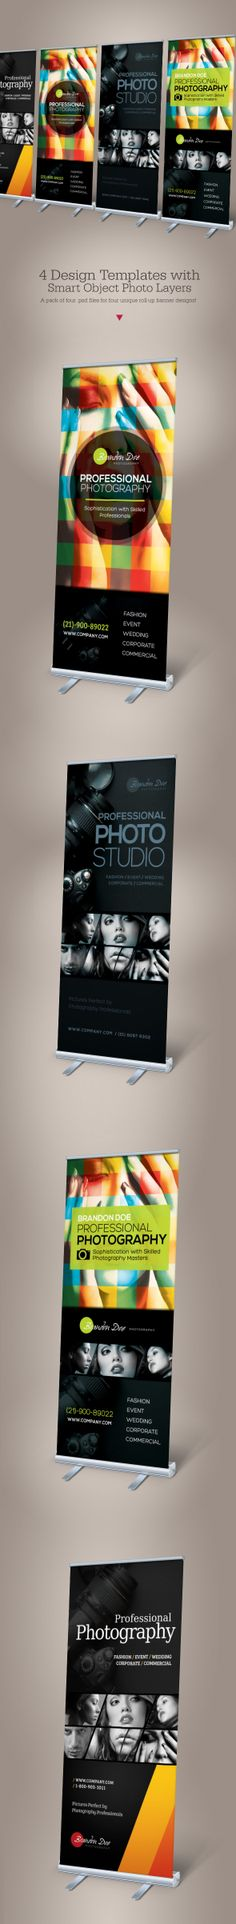 Buy Photography Roll-up Banners by on GraphicRiver. Professional Photography Roll-up Banners These templates are perfect for photography service or for professional phot. Web Design, Graphic Design Layouts, Layout Design, Booth Design, Pop Up Banner, Best Banner, Branding, Rollup Design, Standing Banner Design